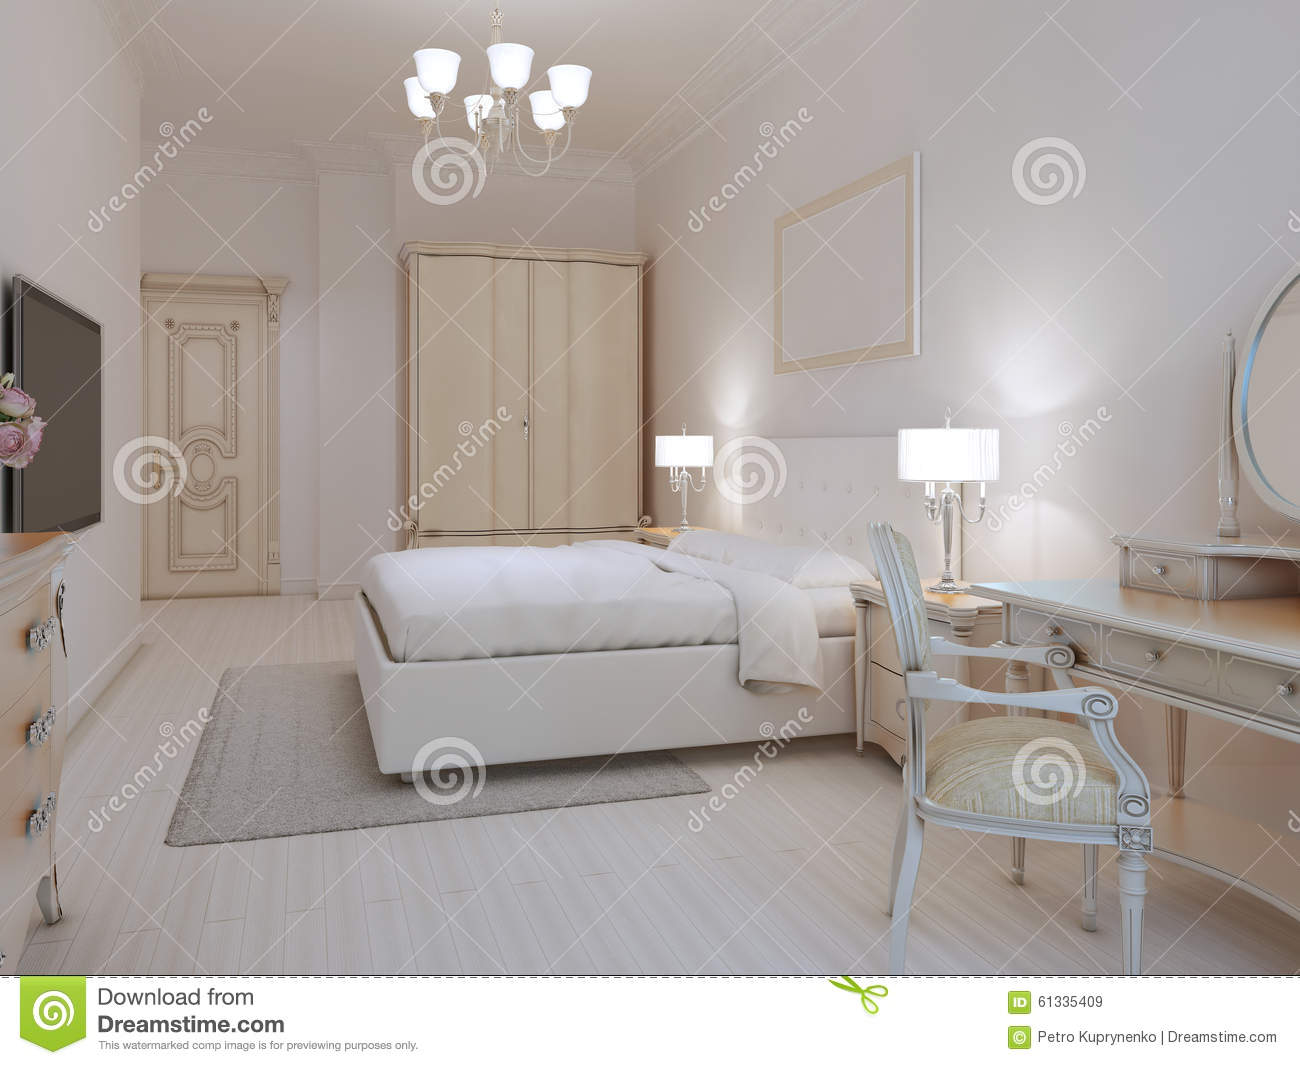 white bedroom art deco style stock illustration illustration 61335409. Black Bedroom Furniture Sets. Home Design Ideas